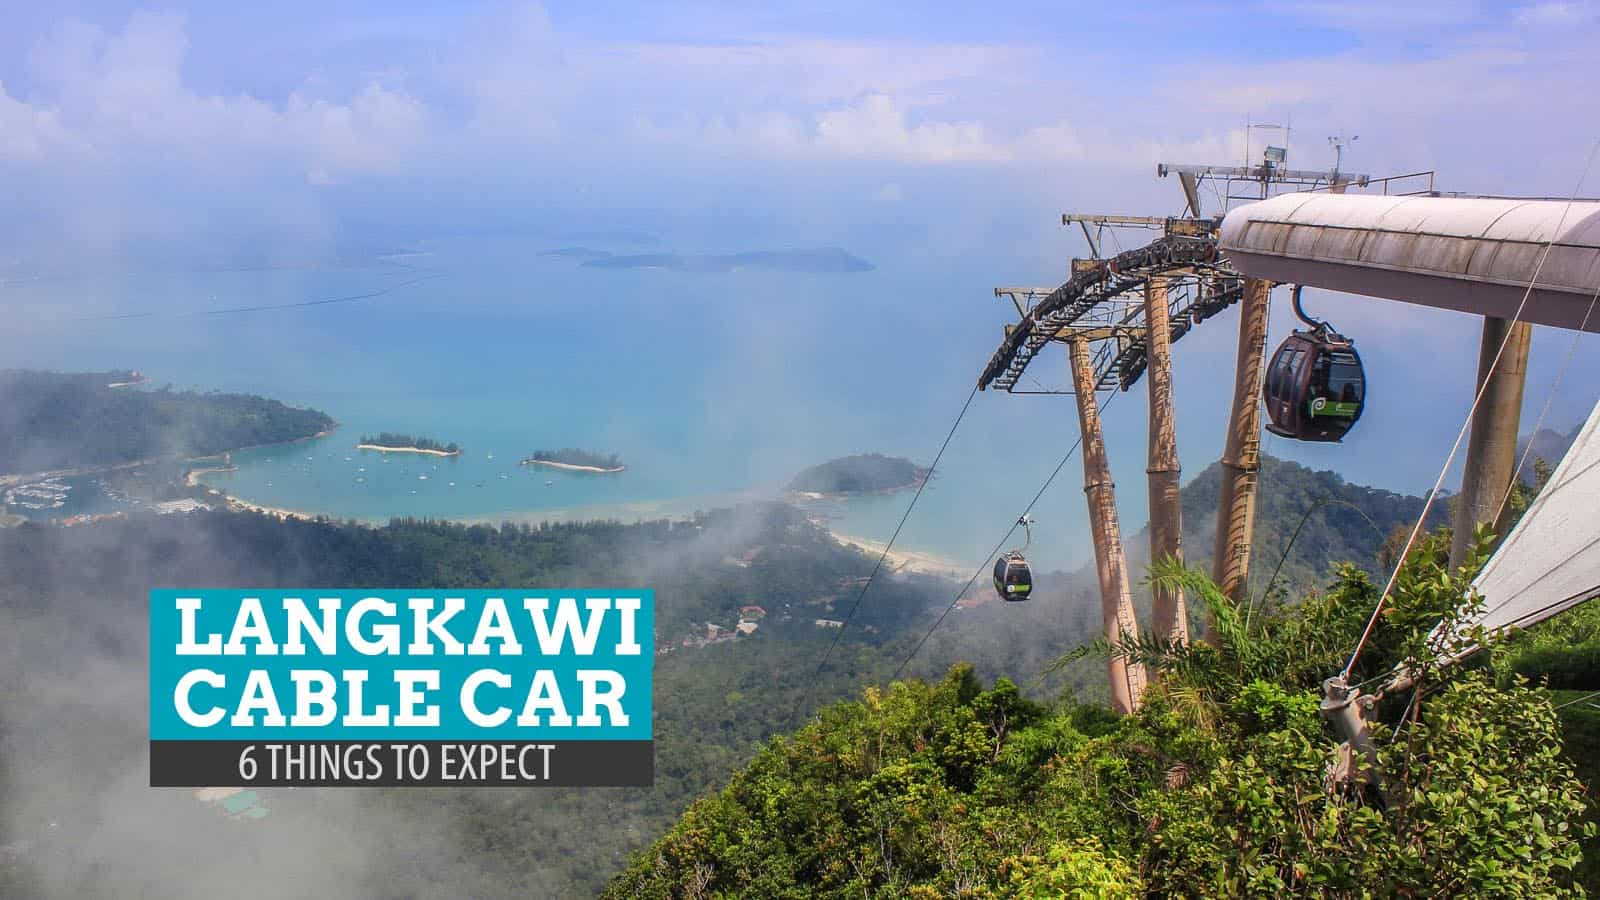 Panorama Langkawi Cable Car, Malaysia: 6 Things to Expect